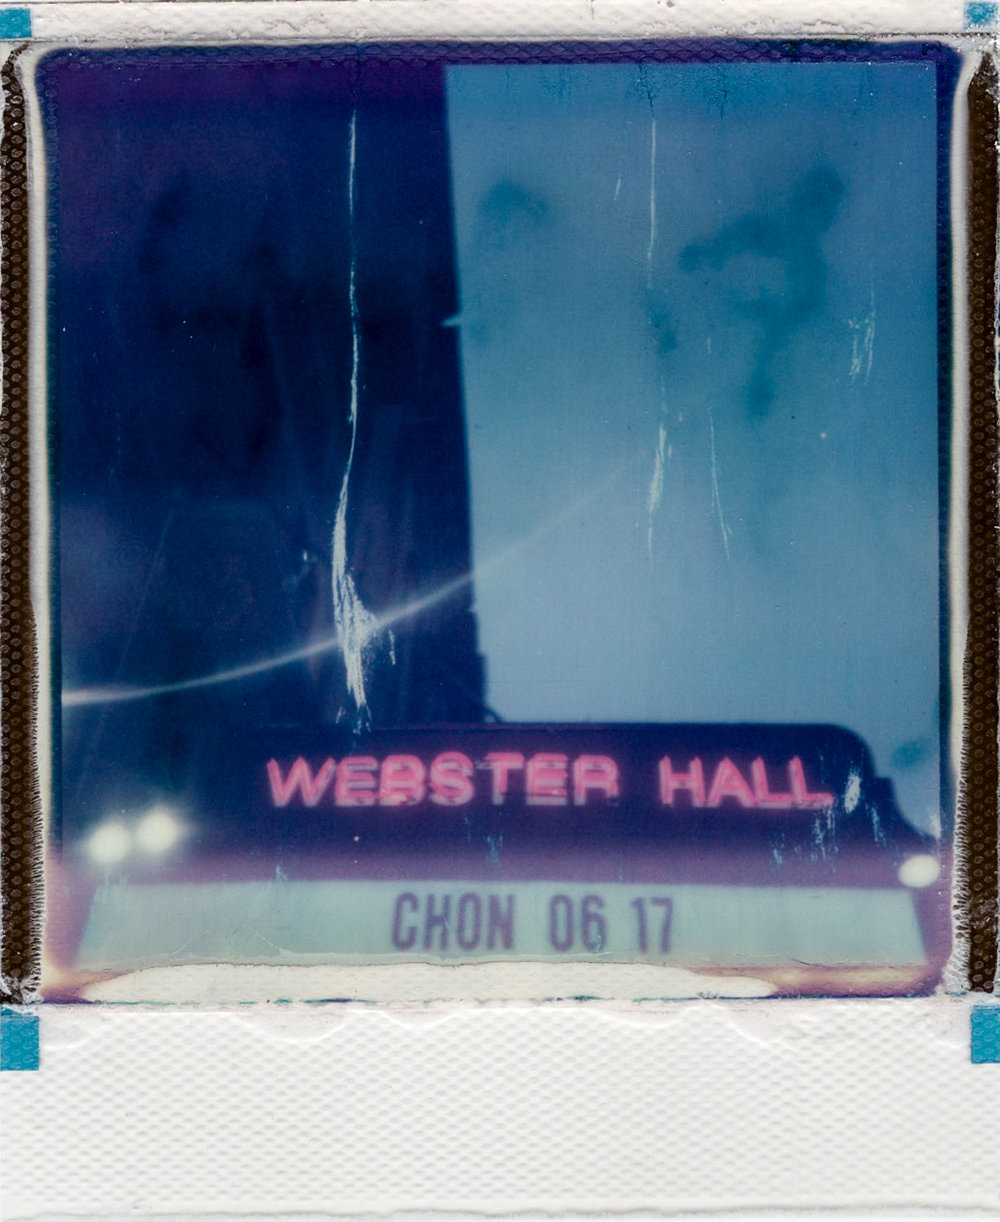 mary_caroline_russell_music_photographer_altanta_nashville_webster_hall_new_York_city_polaroid